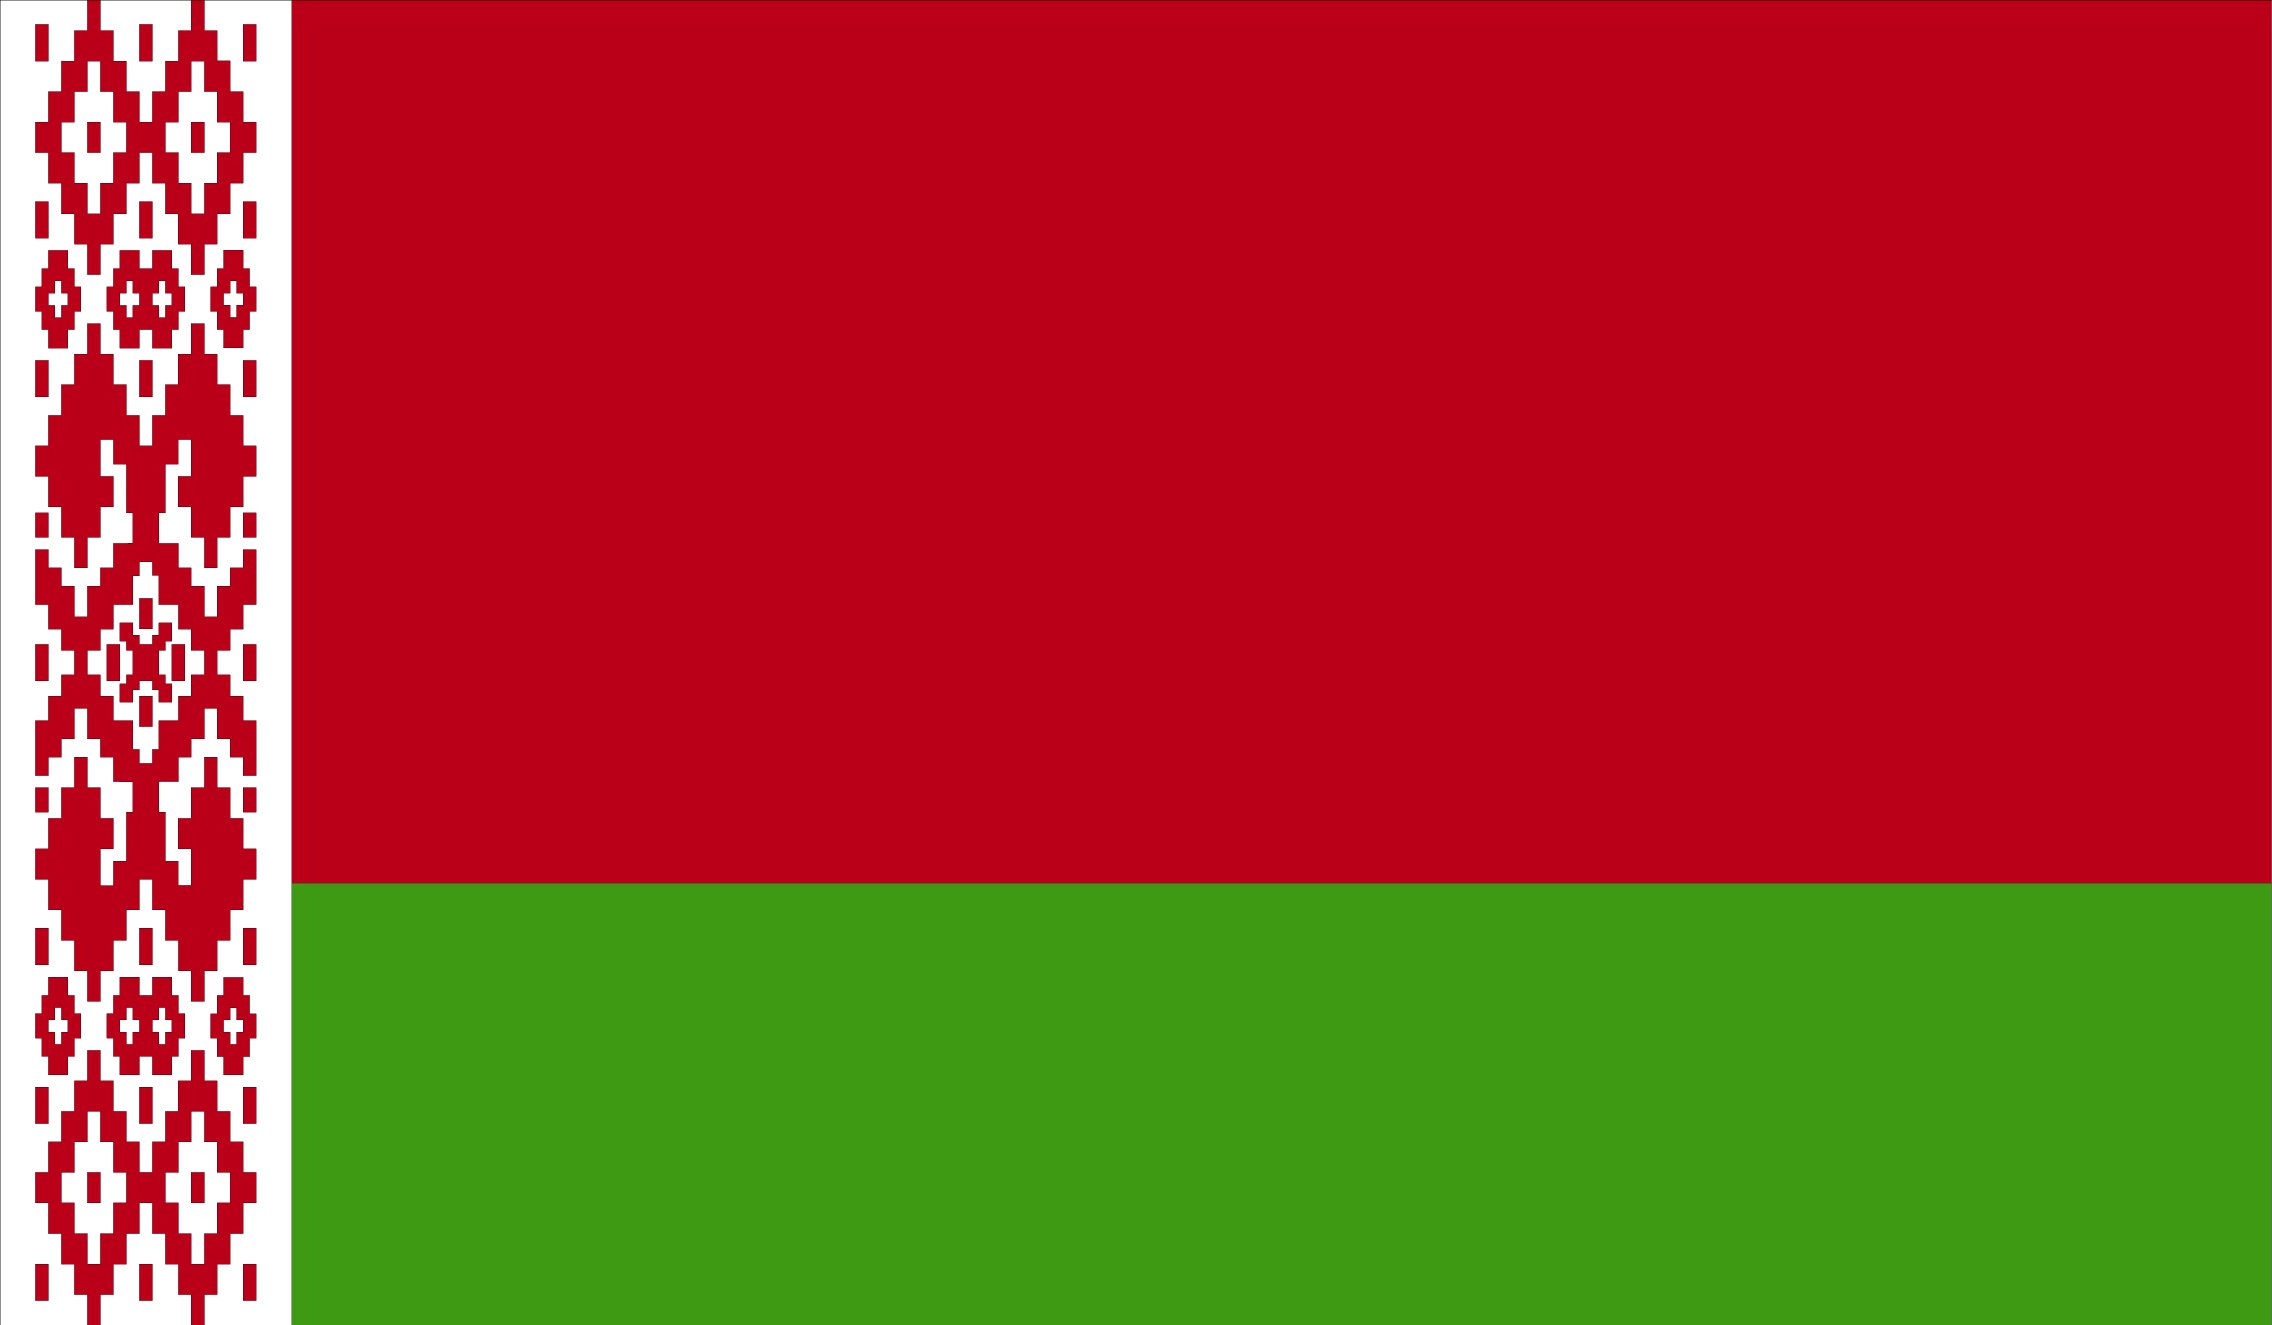 Belarus Flag [PDF] Vector EPS Free Download, Logo, Icons, Brand Emblems